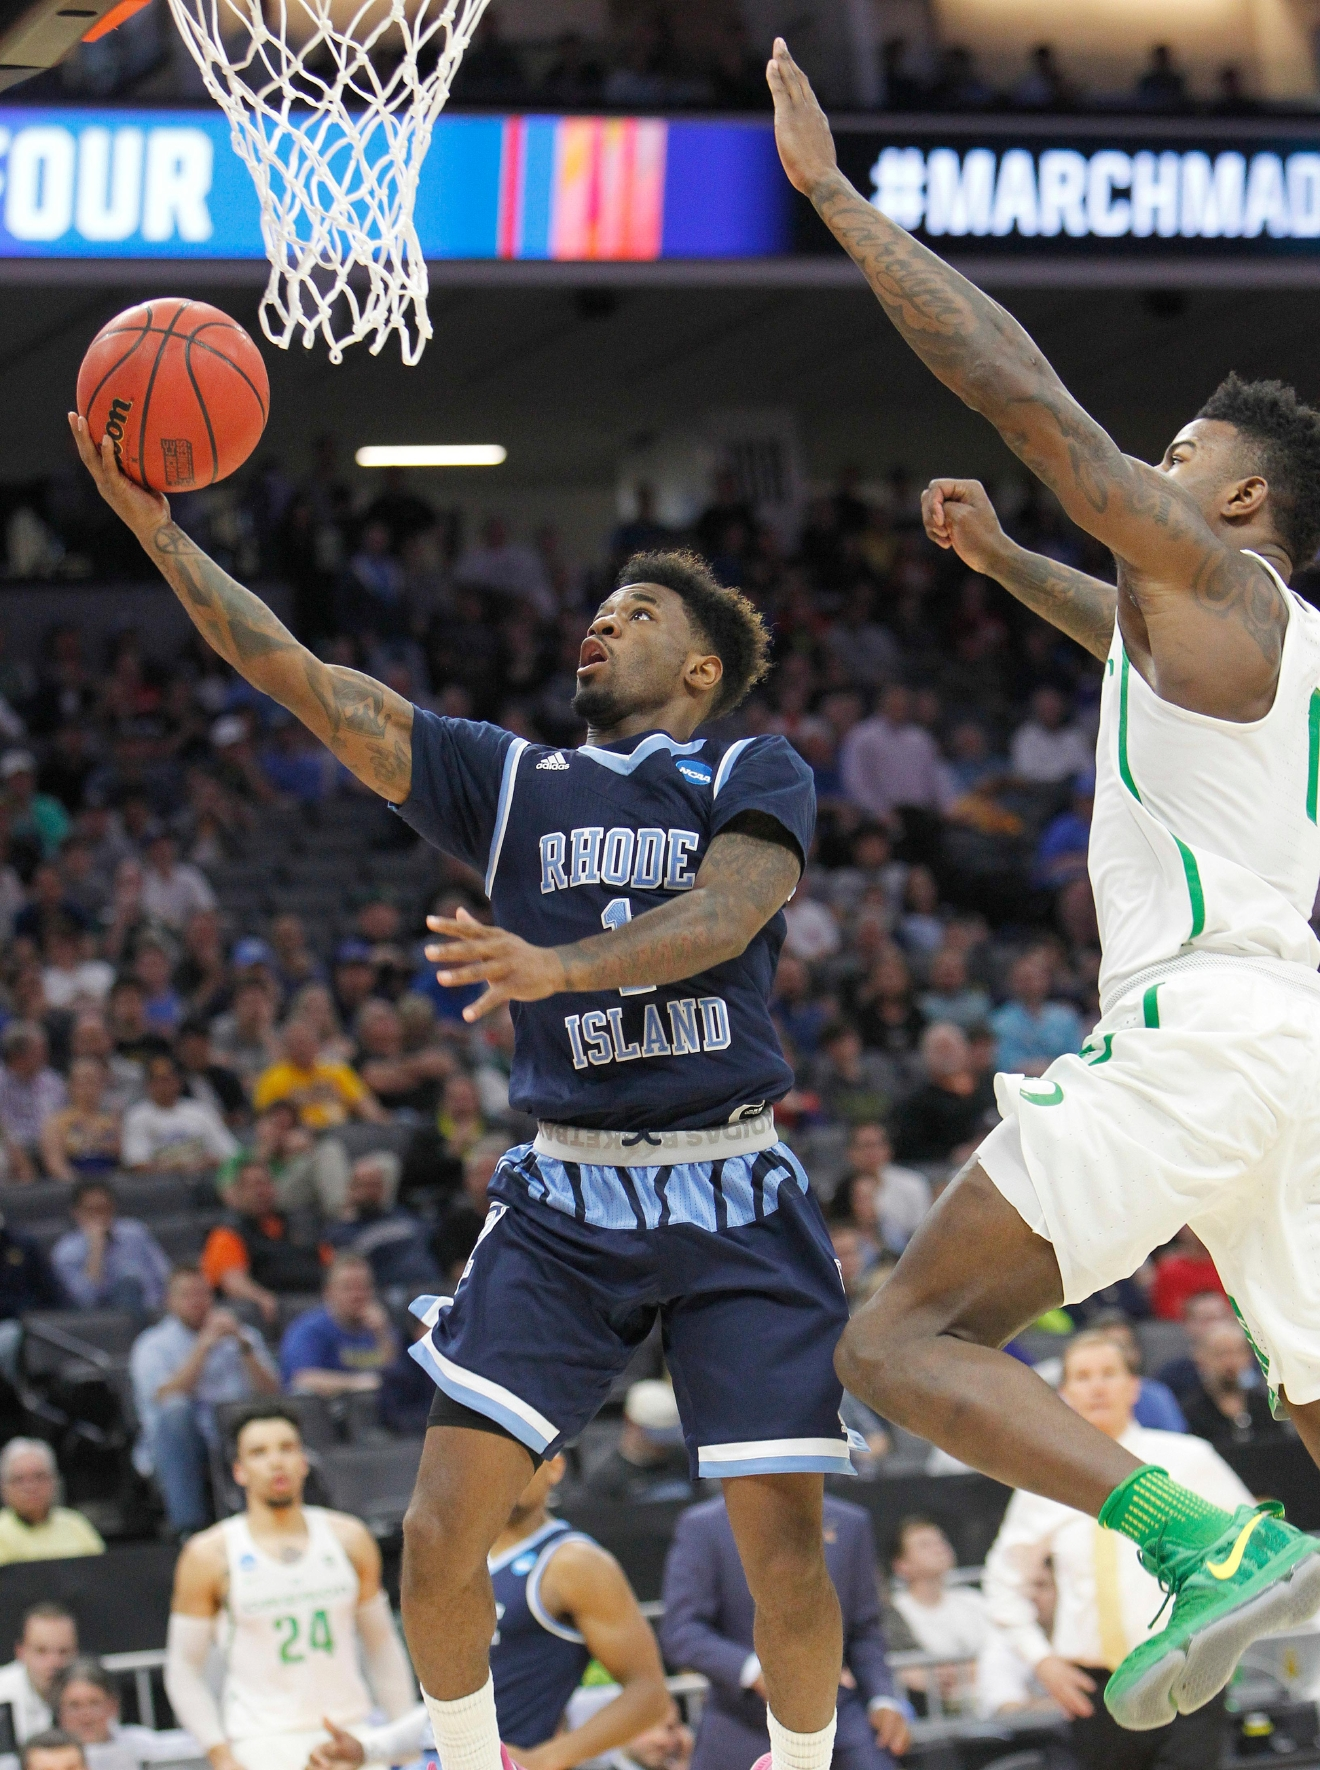 Rhode Island guard Jarvis Garrett, left, goes to the basket against Oregon forward Jordan Bell during the first half of a second-round game of the NCAA men's college basketball tournament in Sacramento, Calif., Sunday, March 19, 2017. (AP Photo/Steve Yeater)